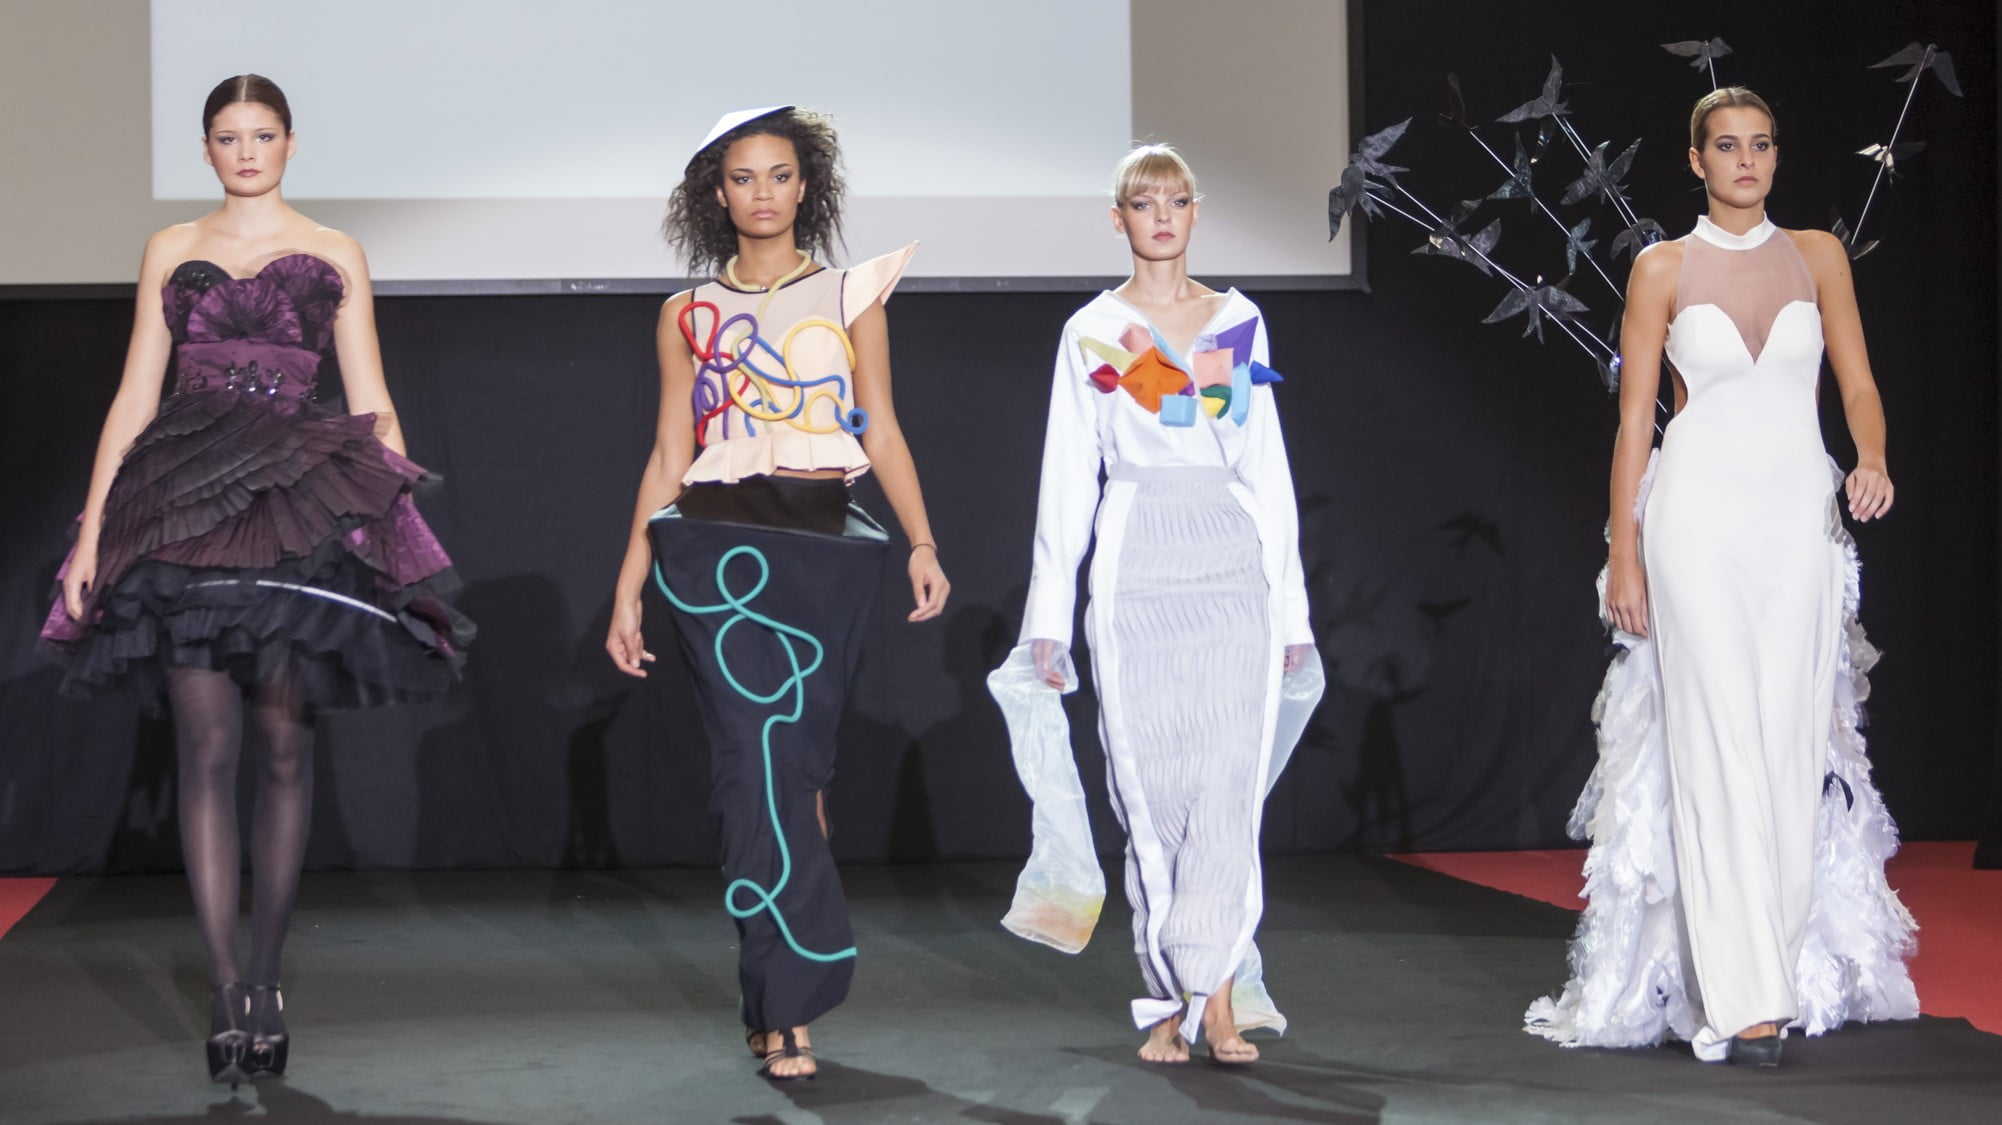 A International fashion design competition